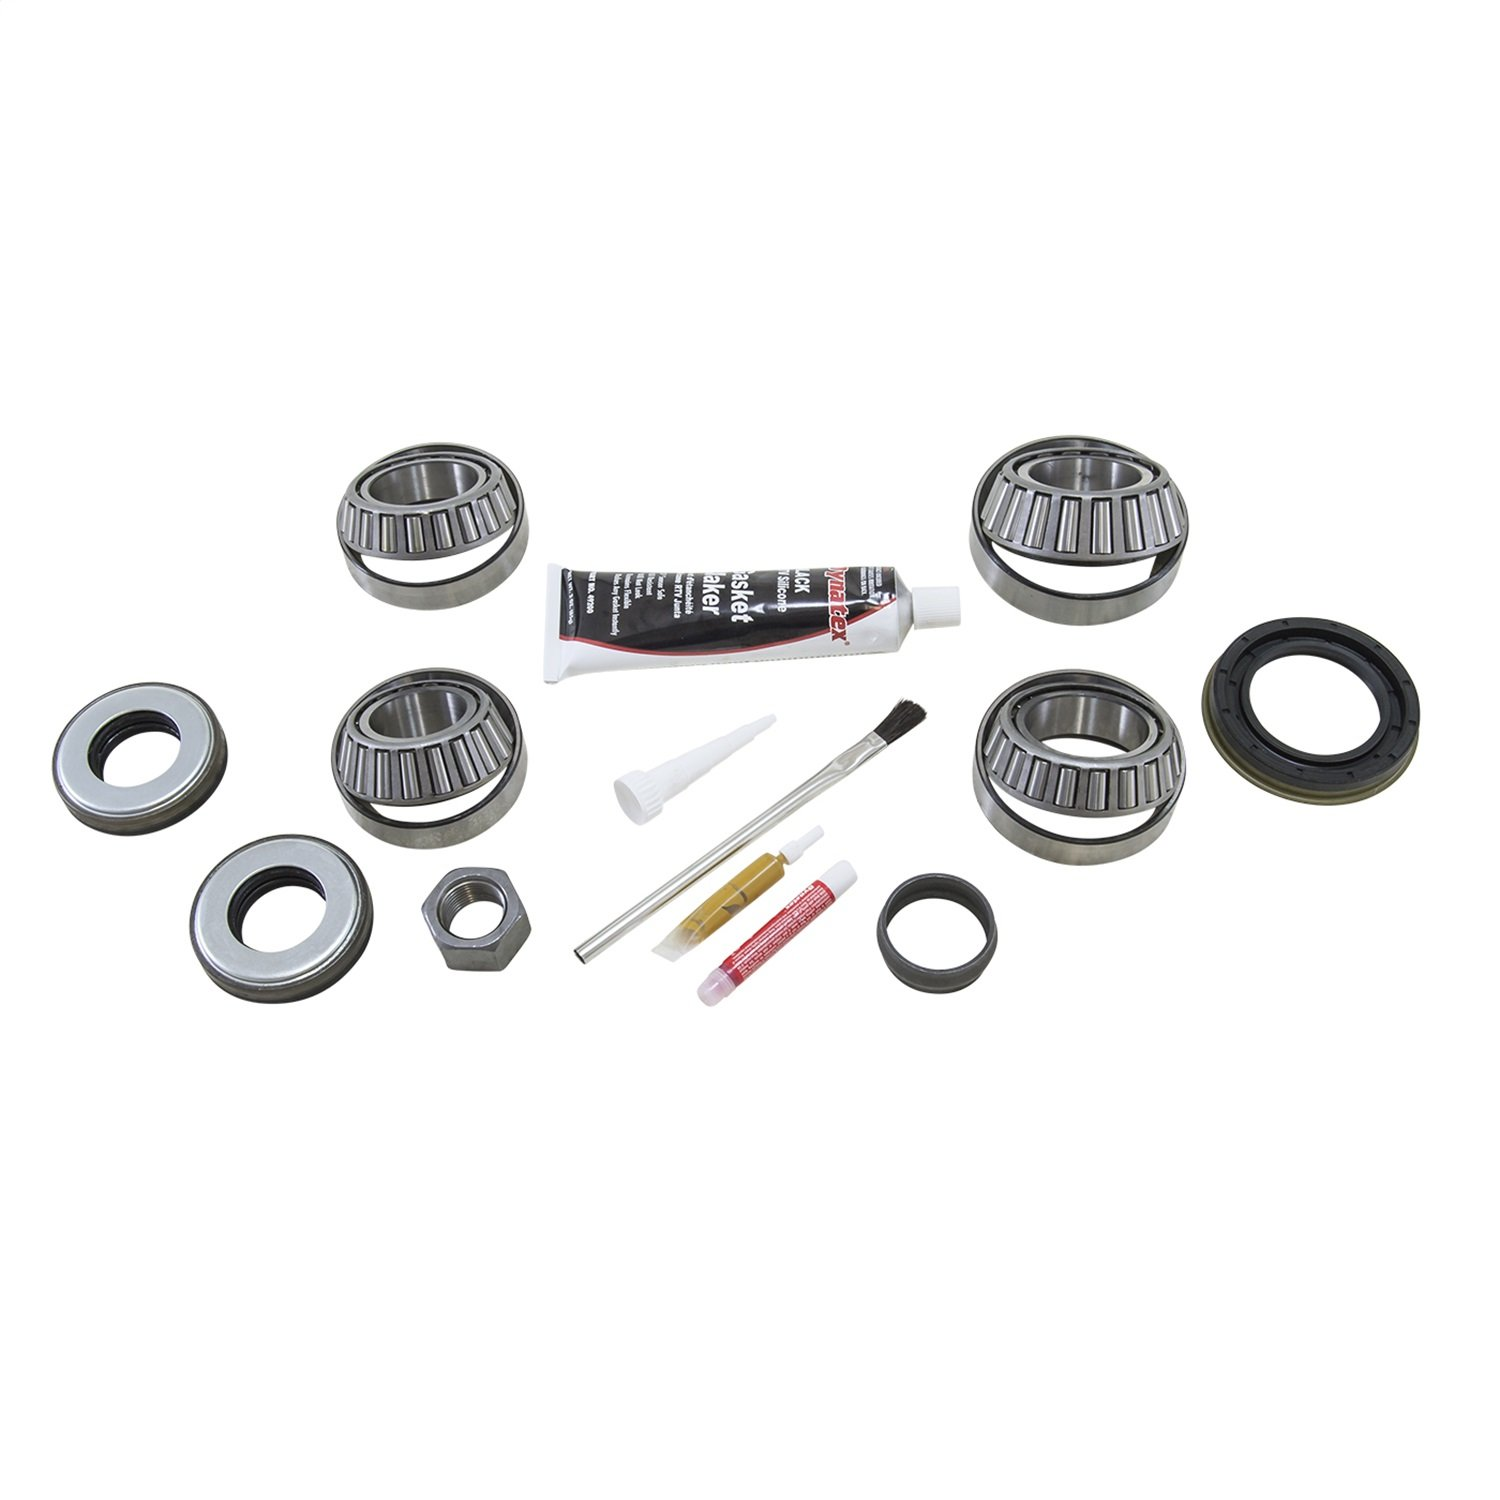 Bearing Kit for GM 9.25 IFS Front Differential ZBKGM9.25IFS-A USA Standard Gear